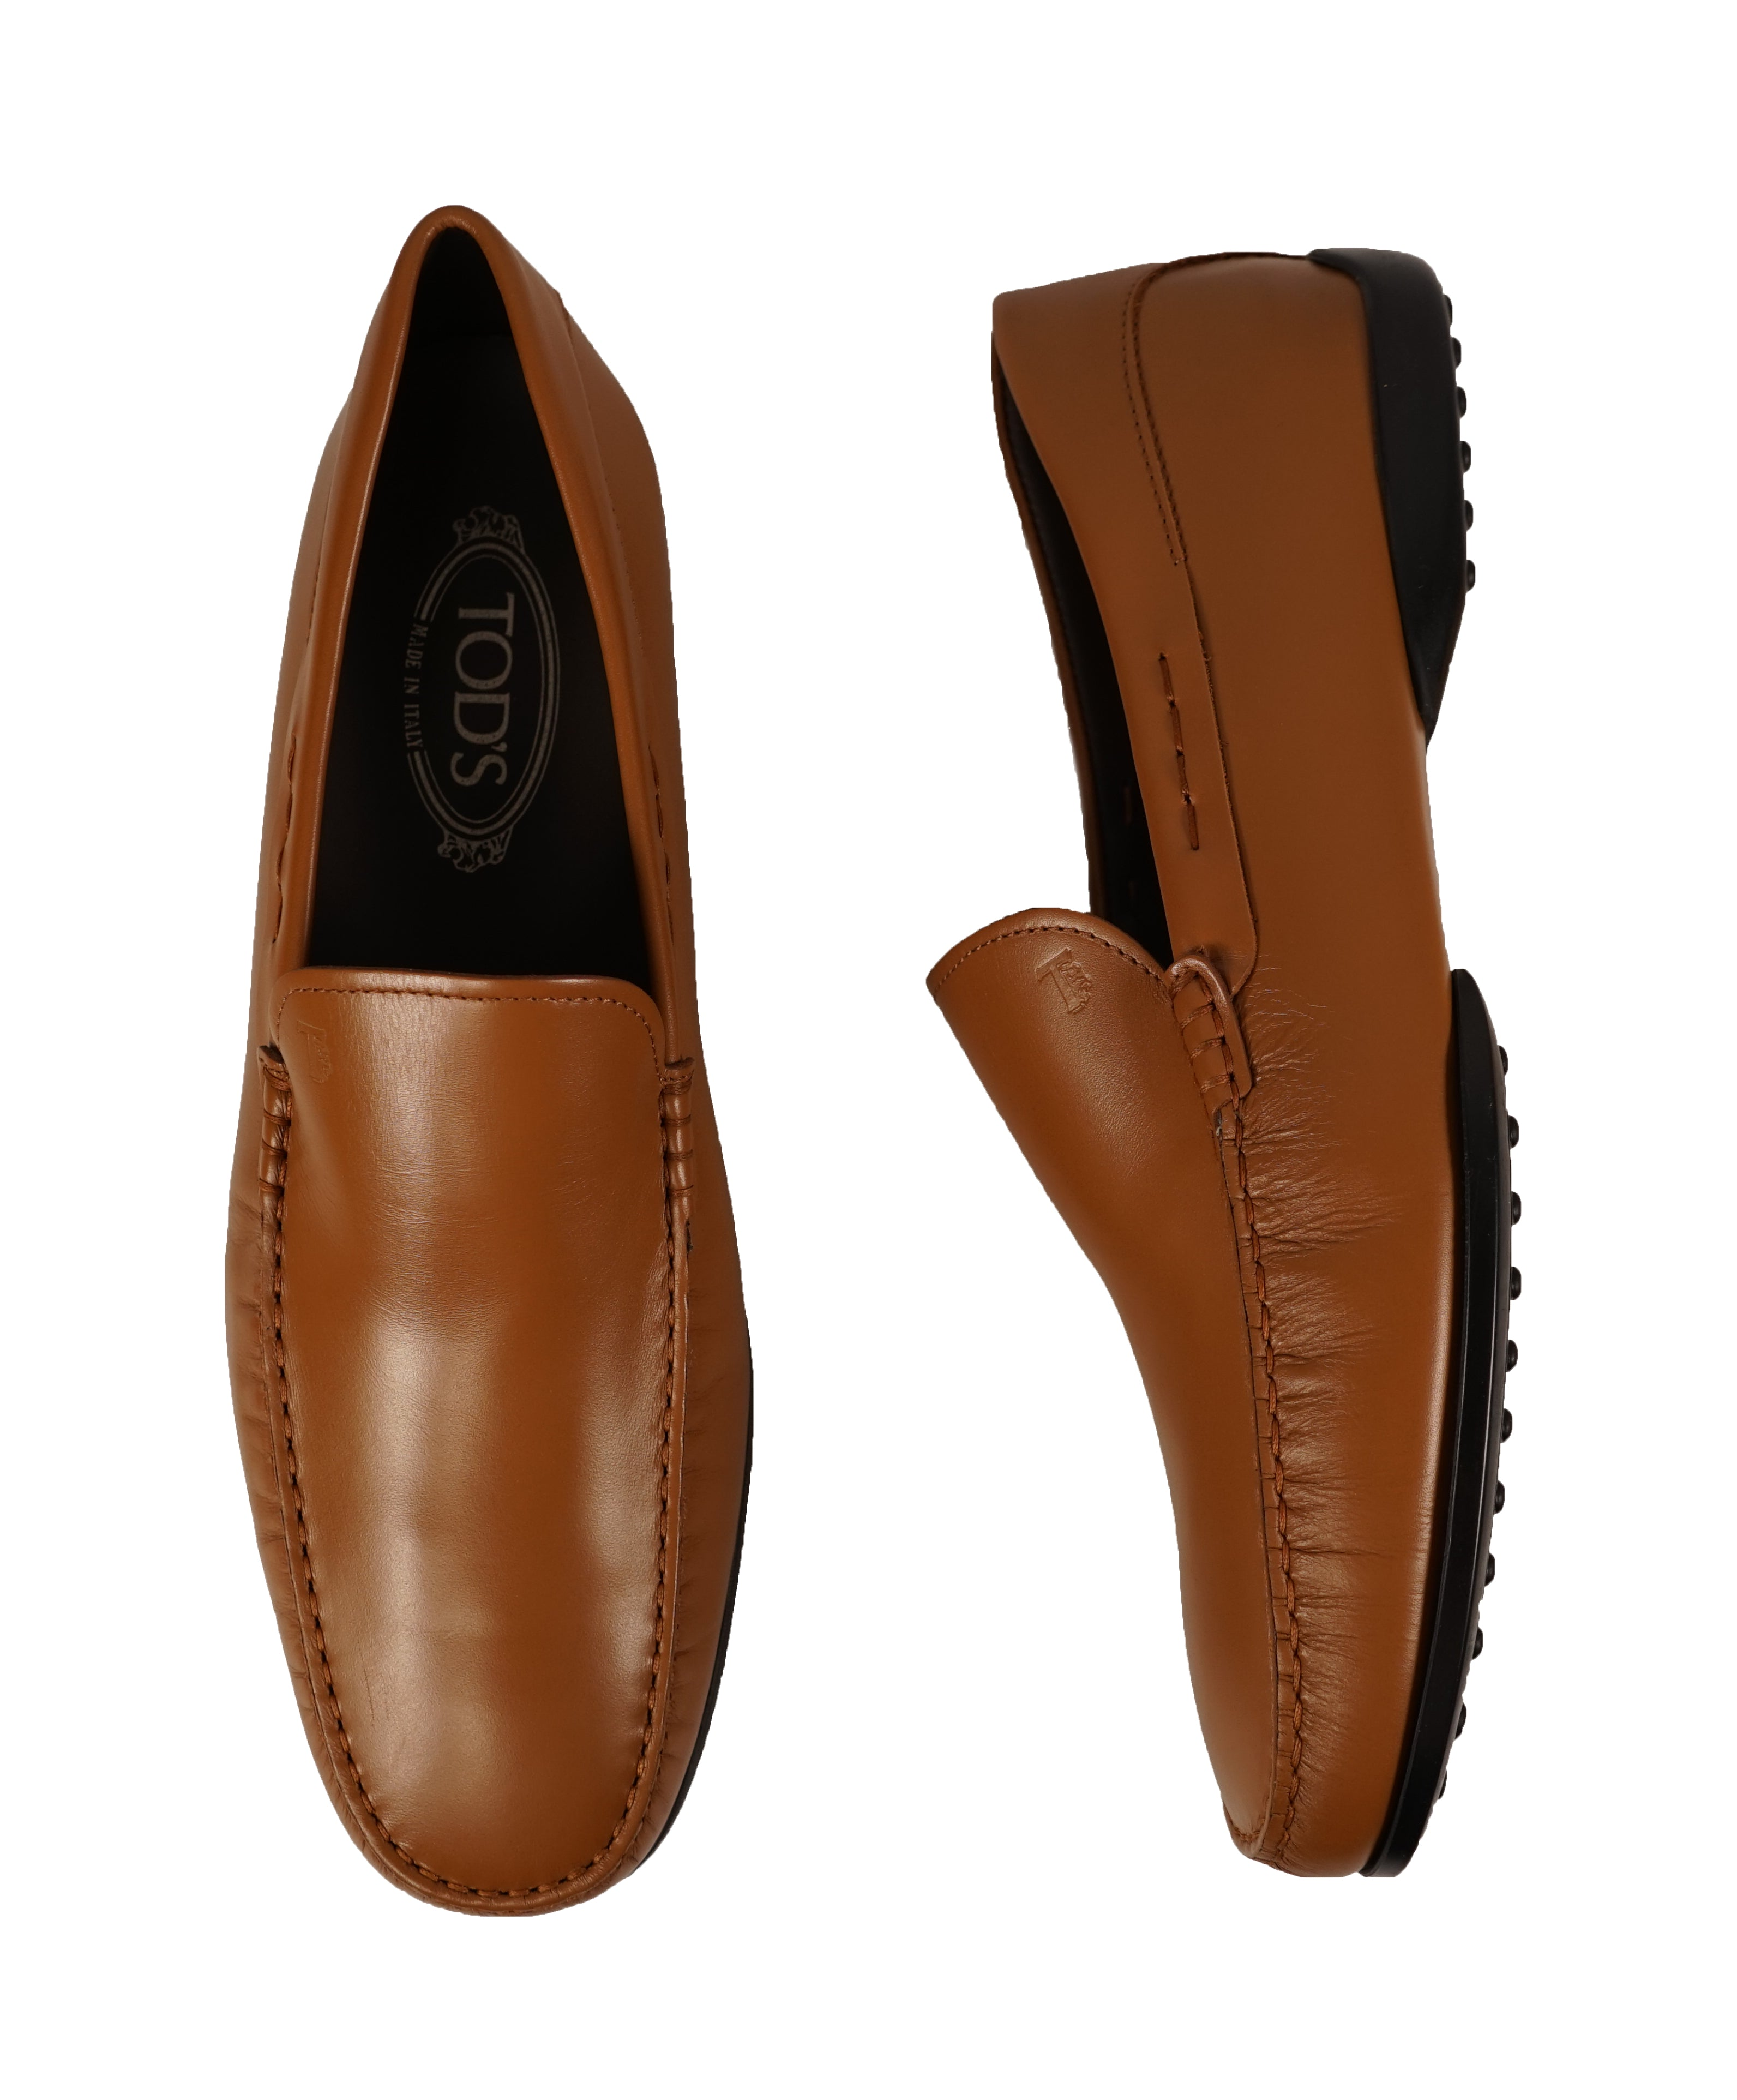 """TOD'S -Brown """"LOGO Gommini"""" Vamp Engraved Italian Leather Loafers- 14"""